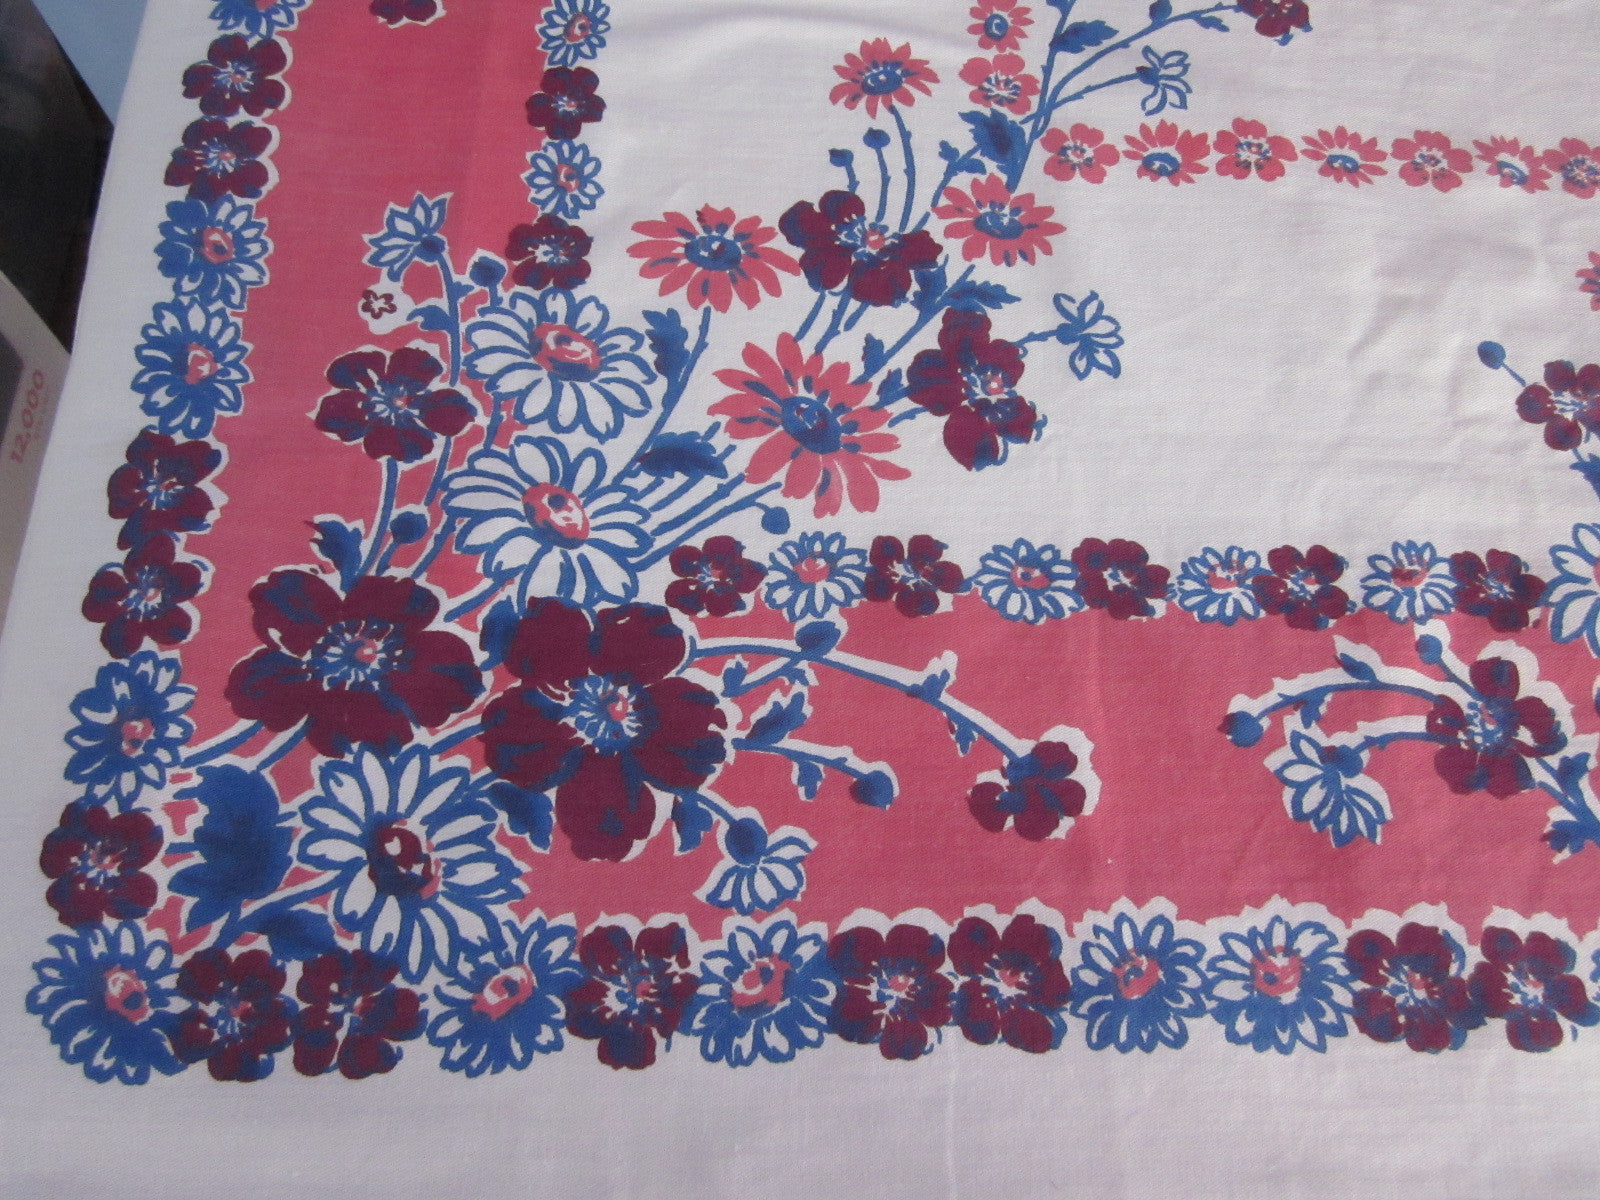 Early Pink Blue Floral Cutter? Vintage Printed Tablecloth (68 X 56)